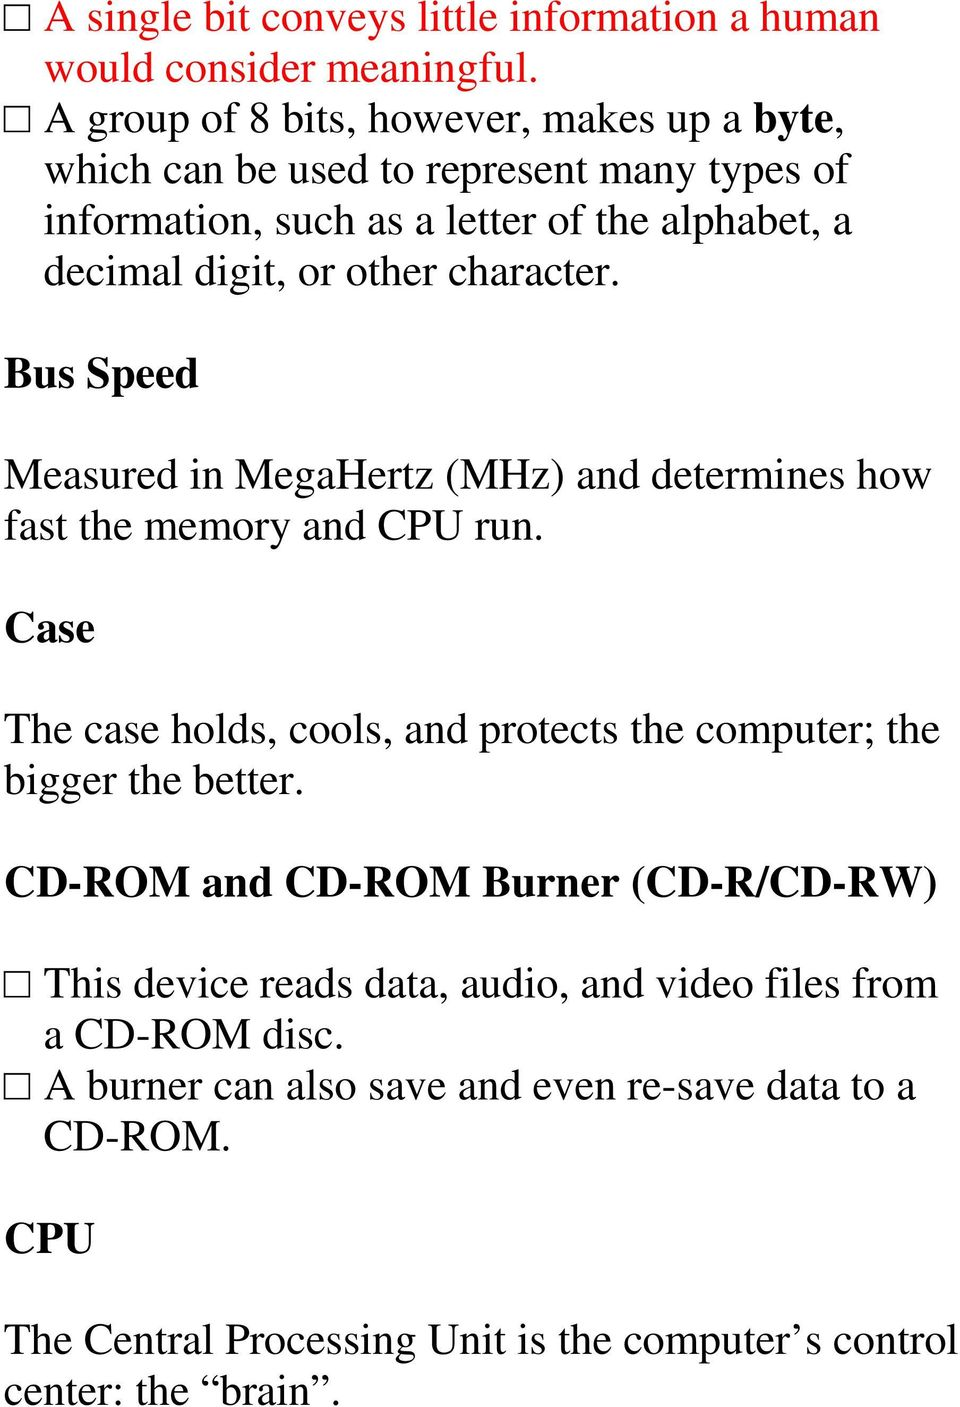 character. Bus Speed Measured in MegaHertz (MHz) and determines how fast the memory and CPU run.